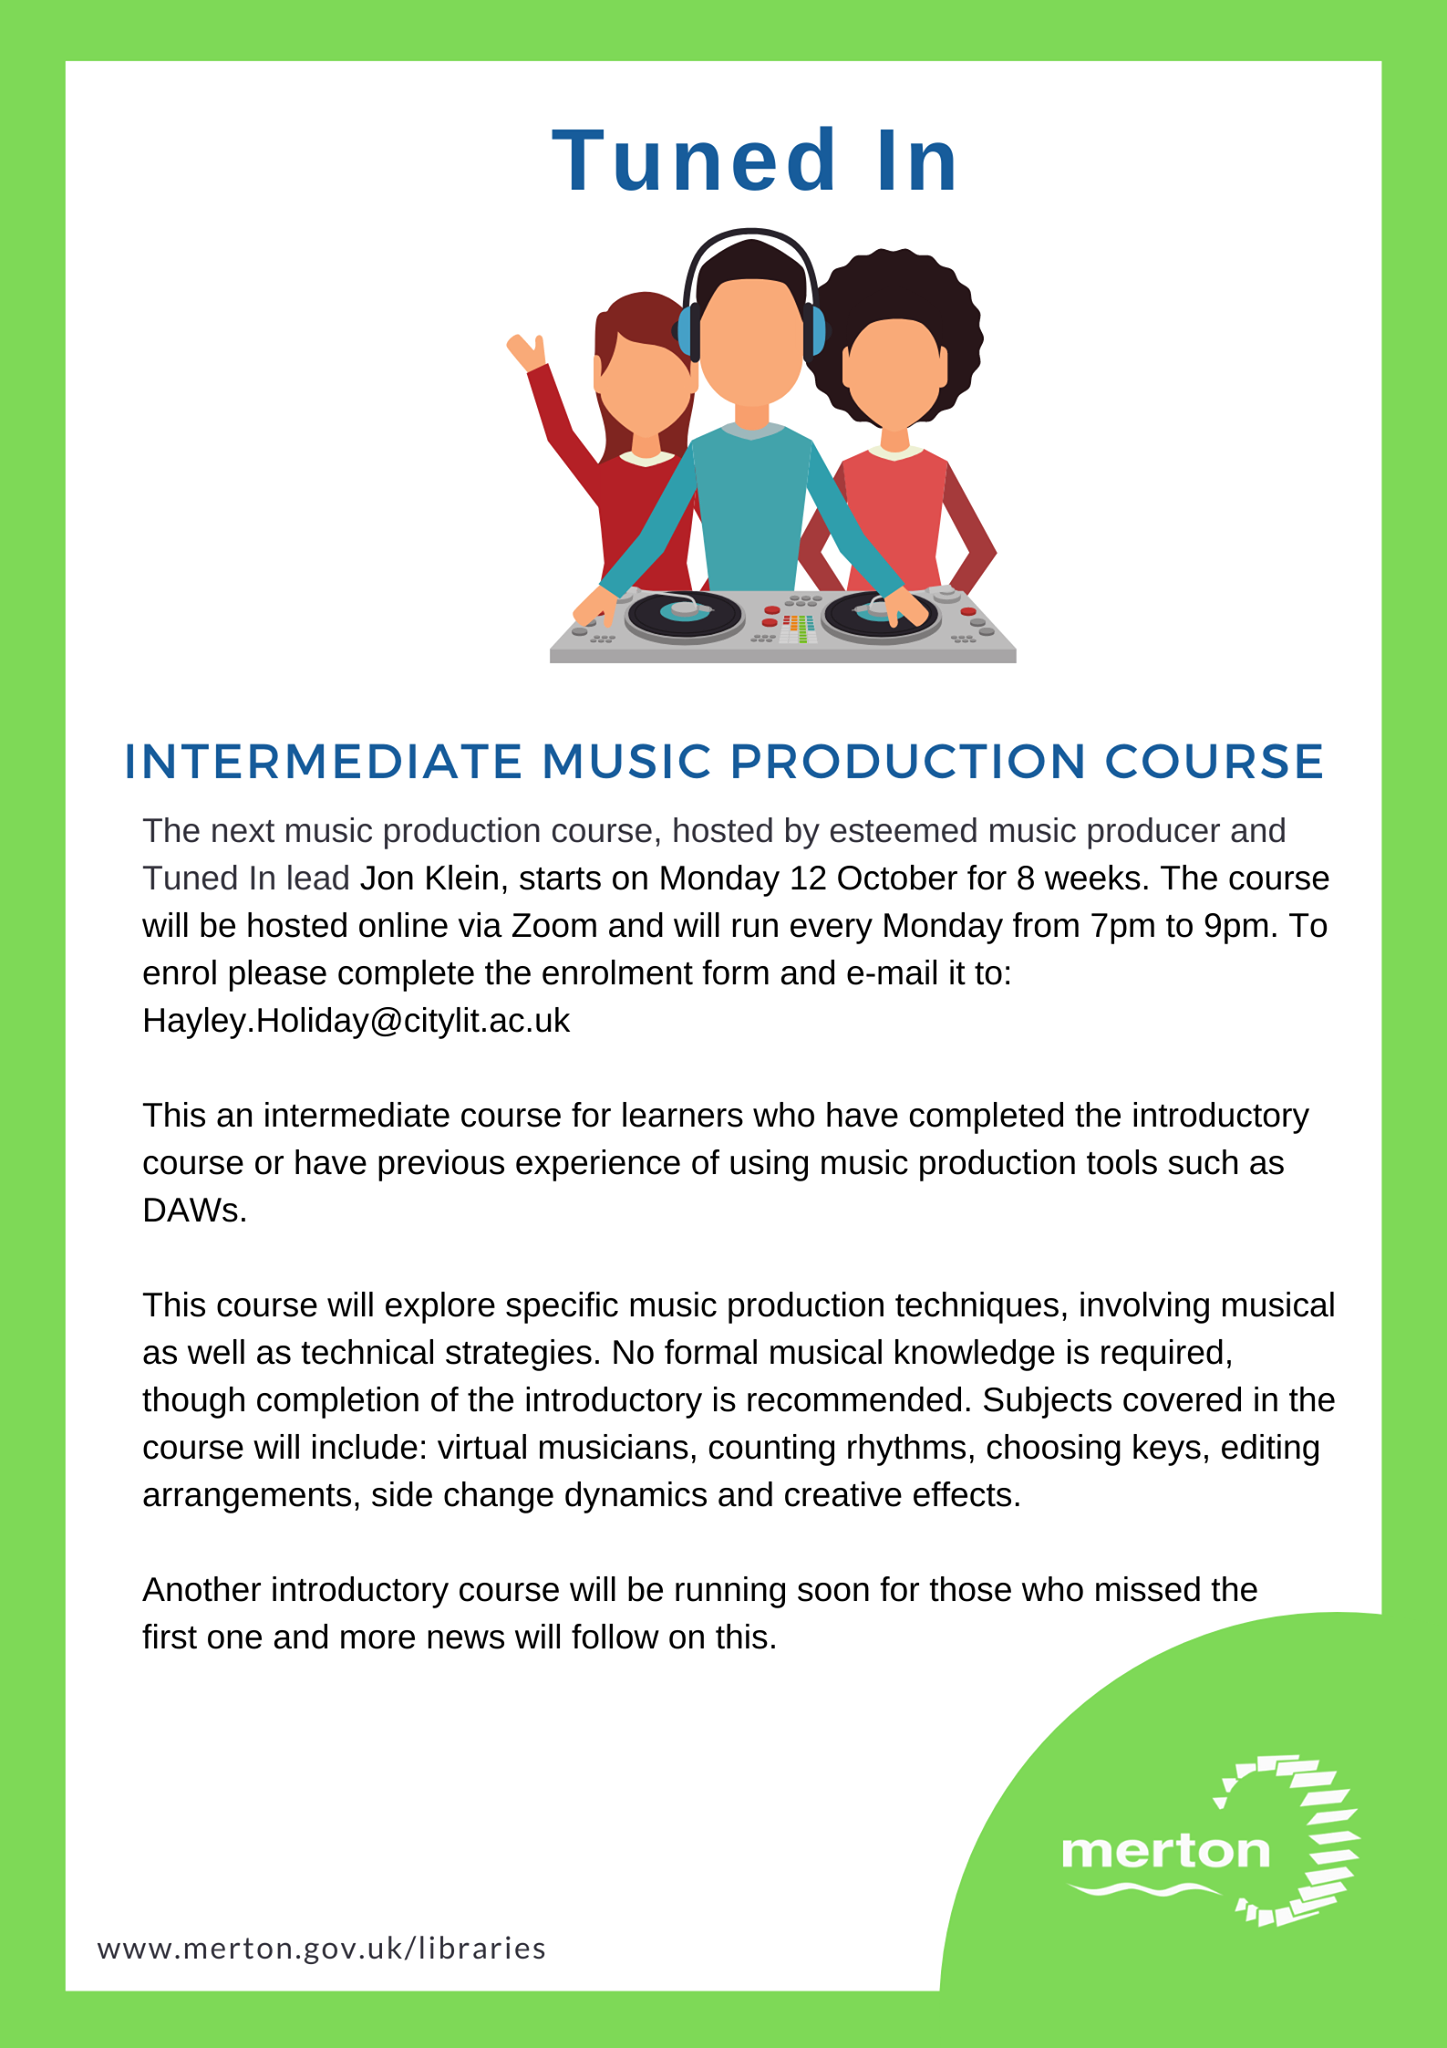 Tuned In Merton Libraries Intermediate Music Production Course